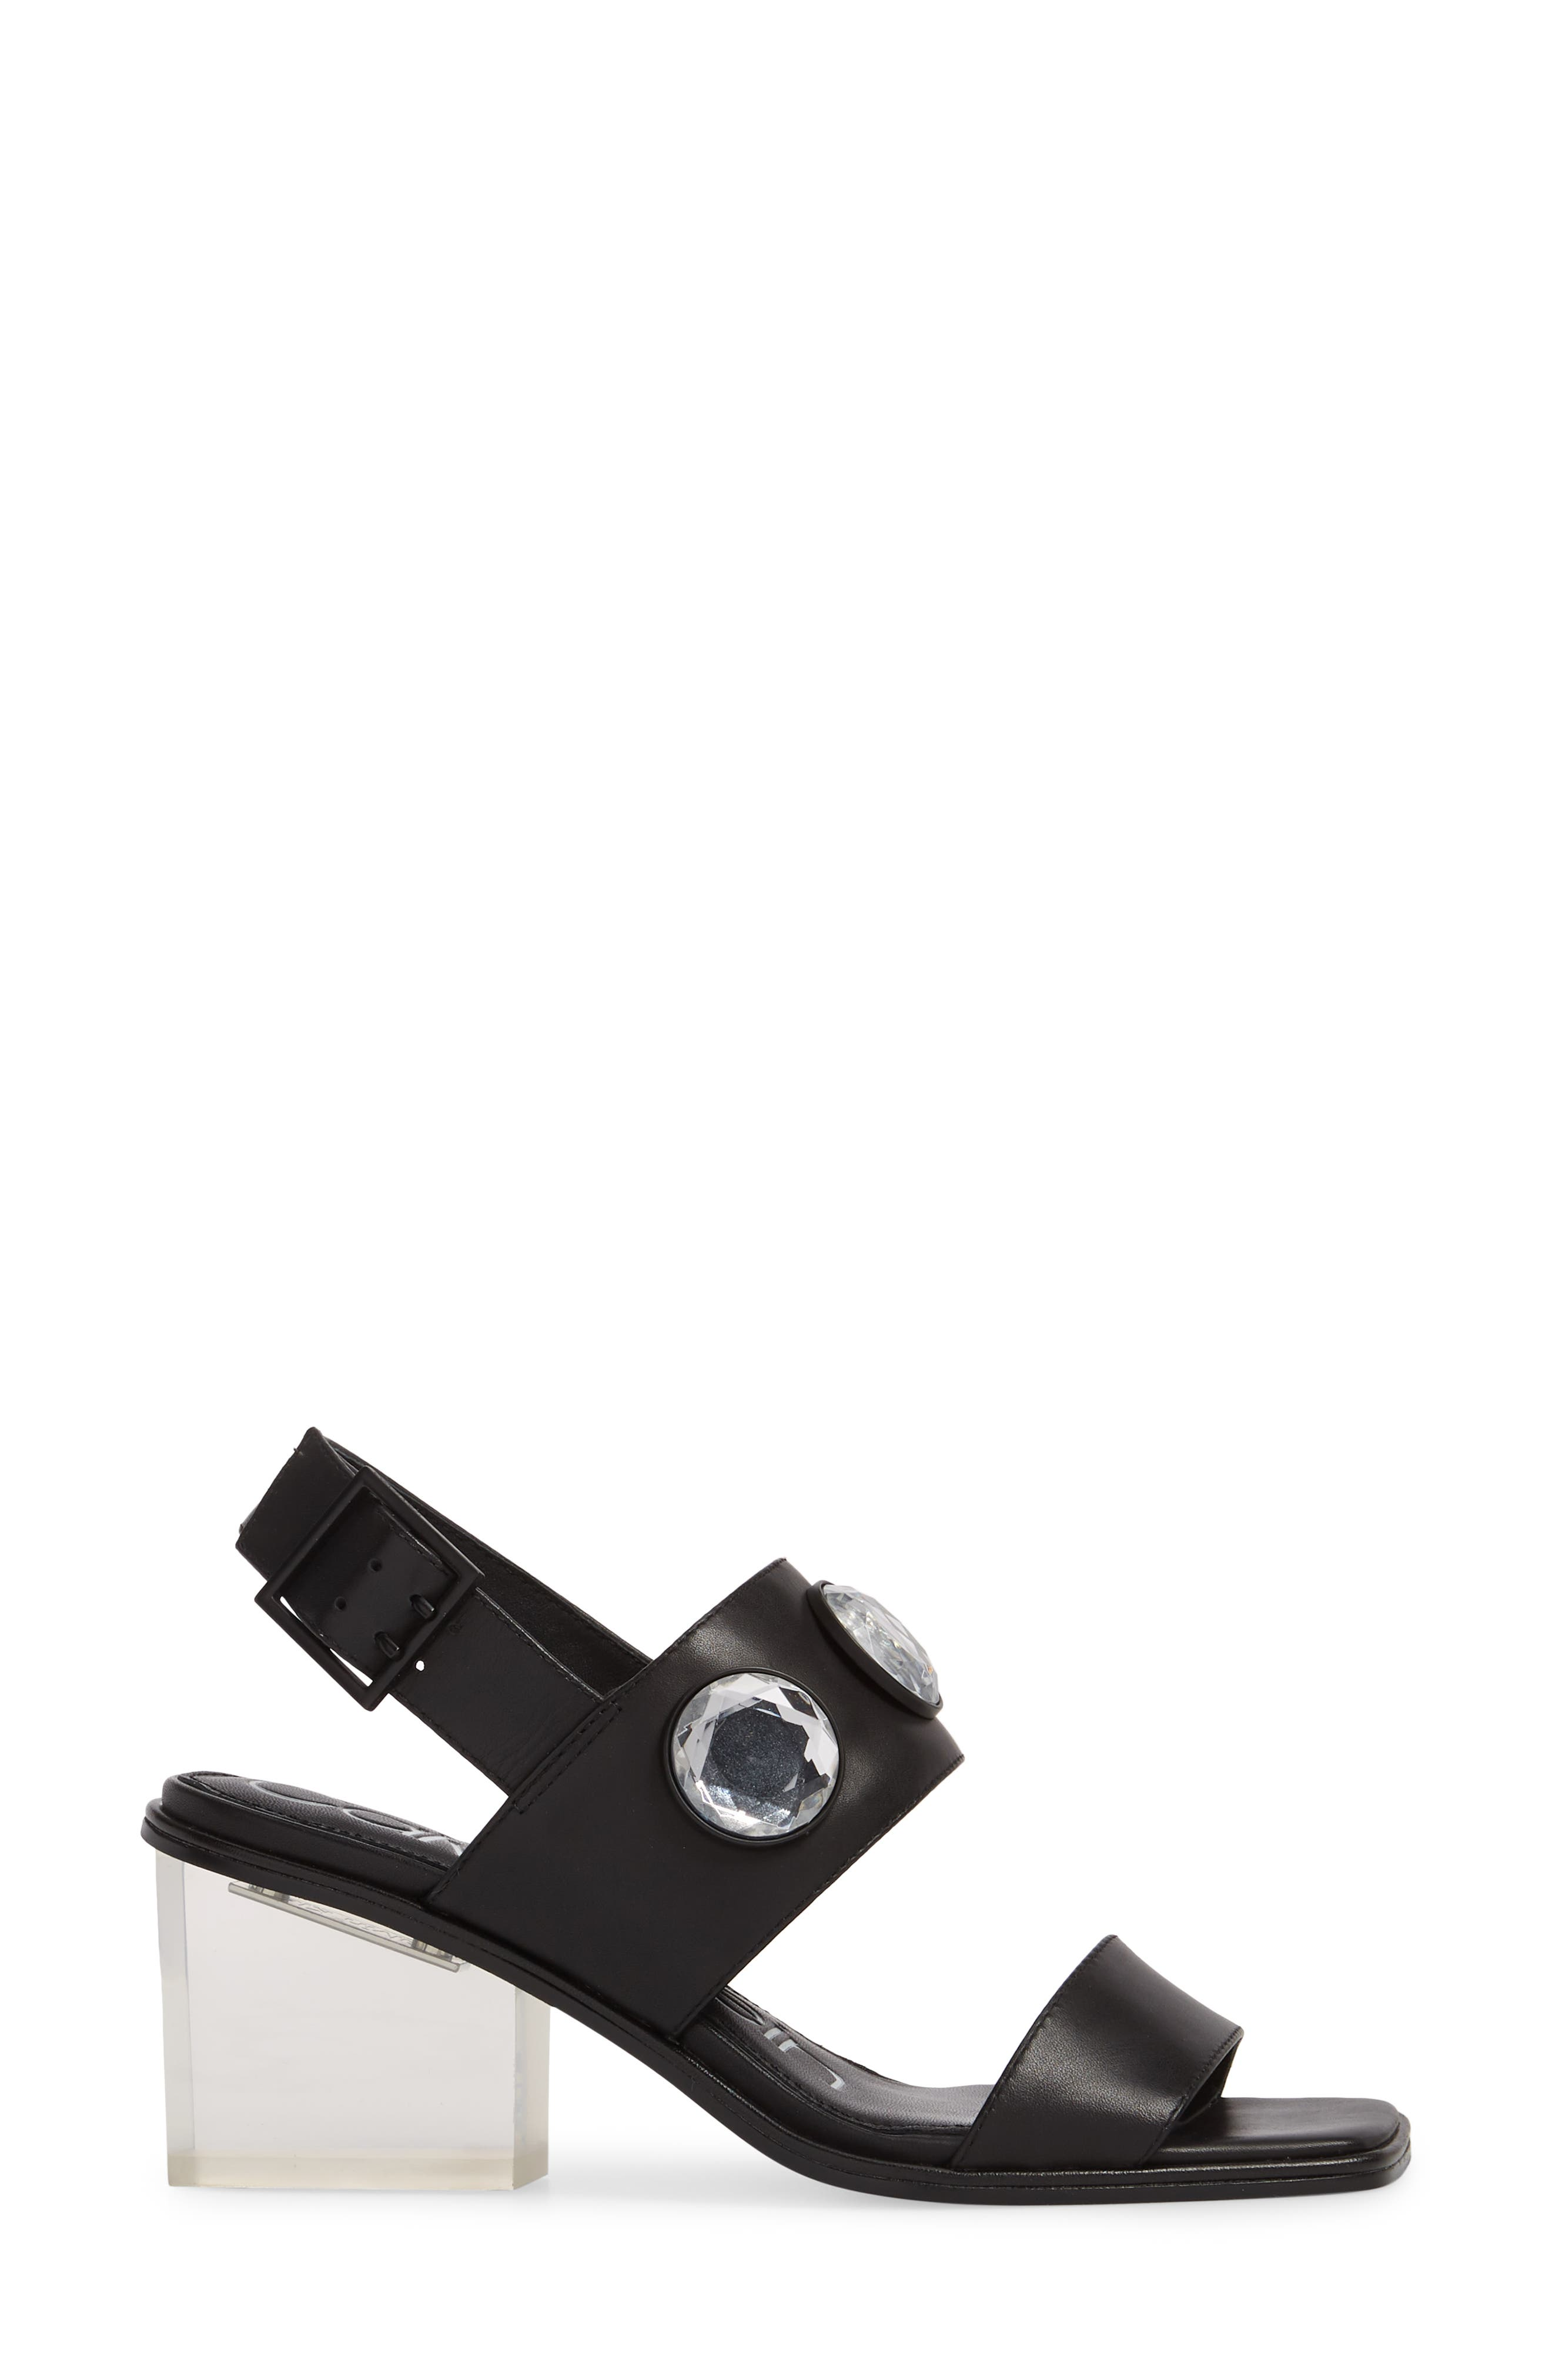 Kadyn Slingback Sandal,                             Alternate thumbnail 3, color,                             Black Leather